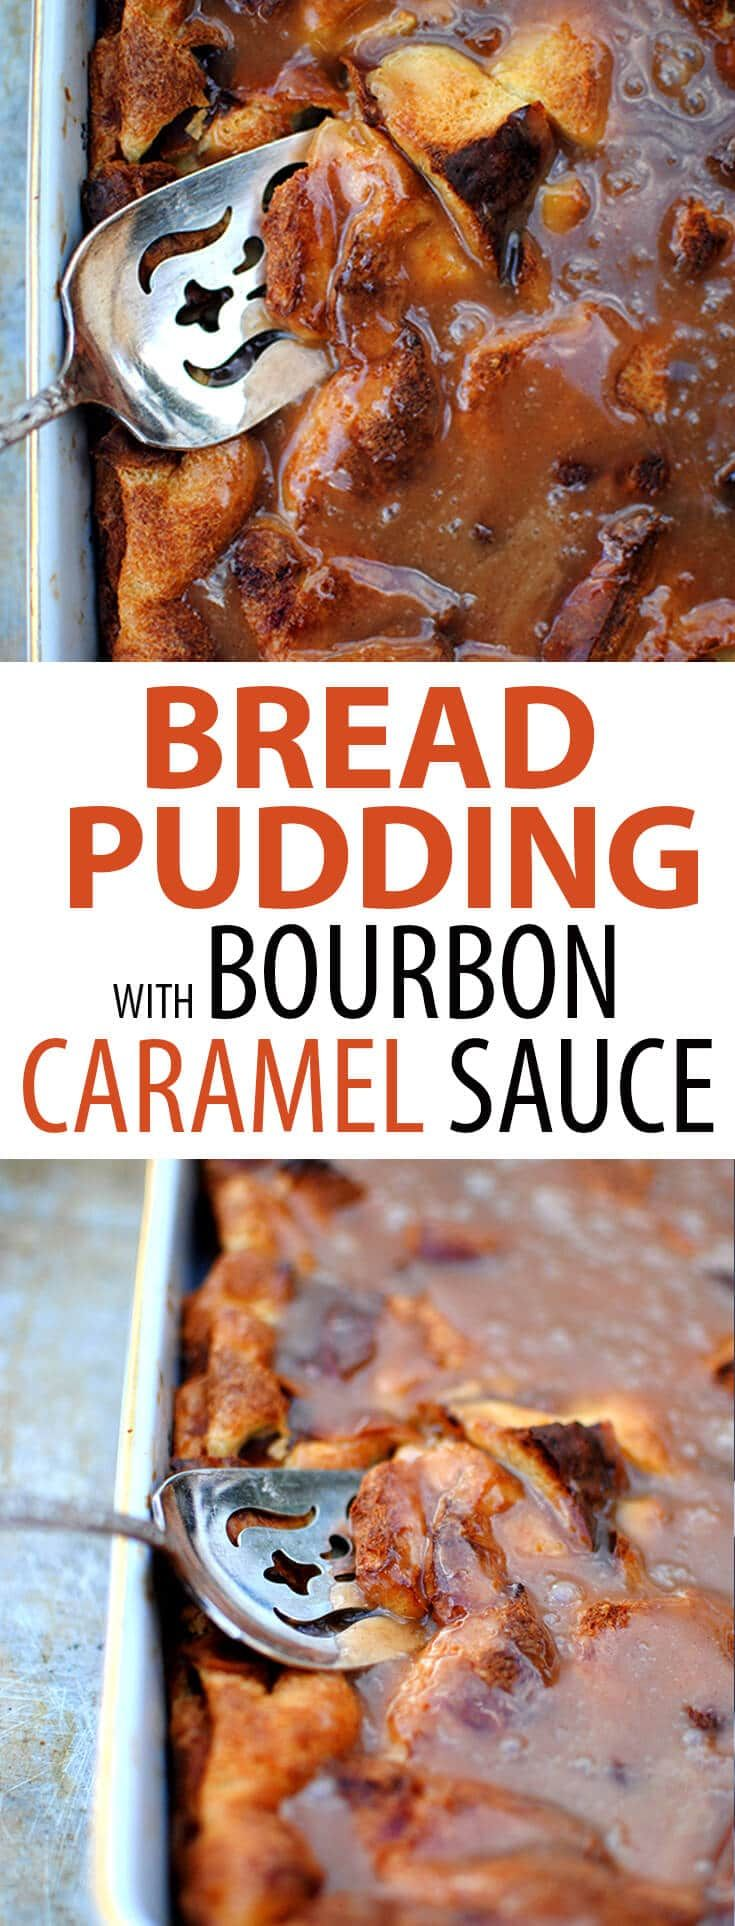 Easy Bread Pudding with Bourbon Caramel Sauce